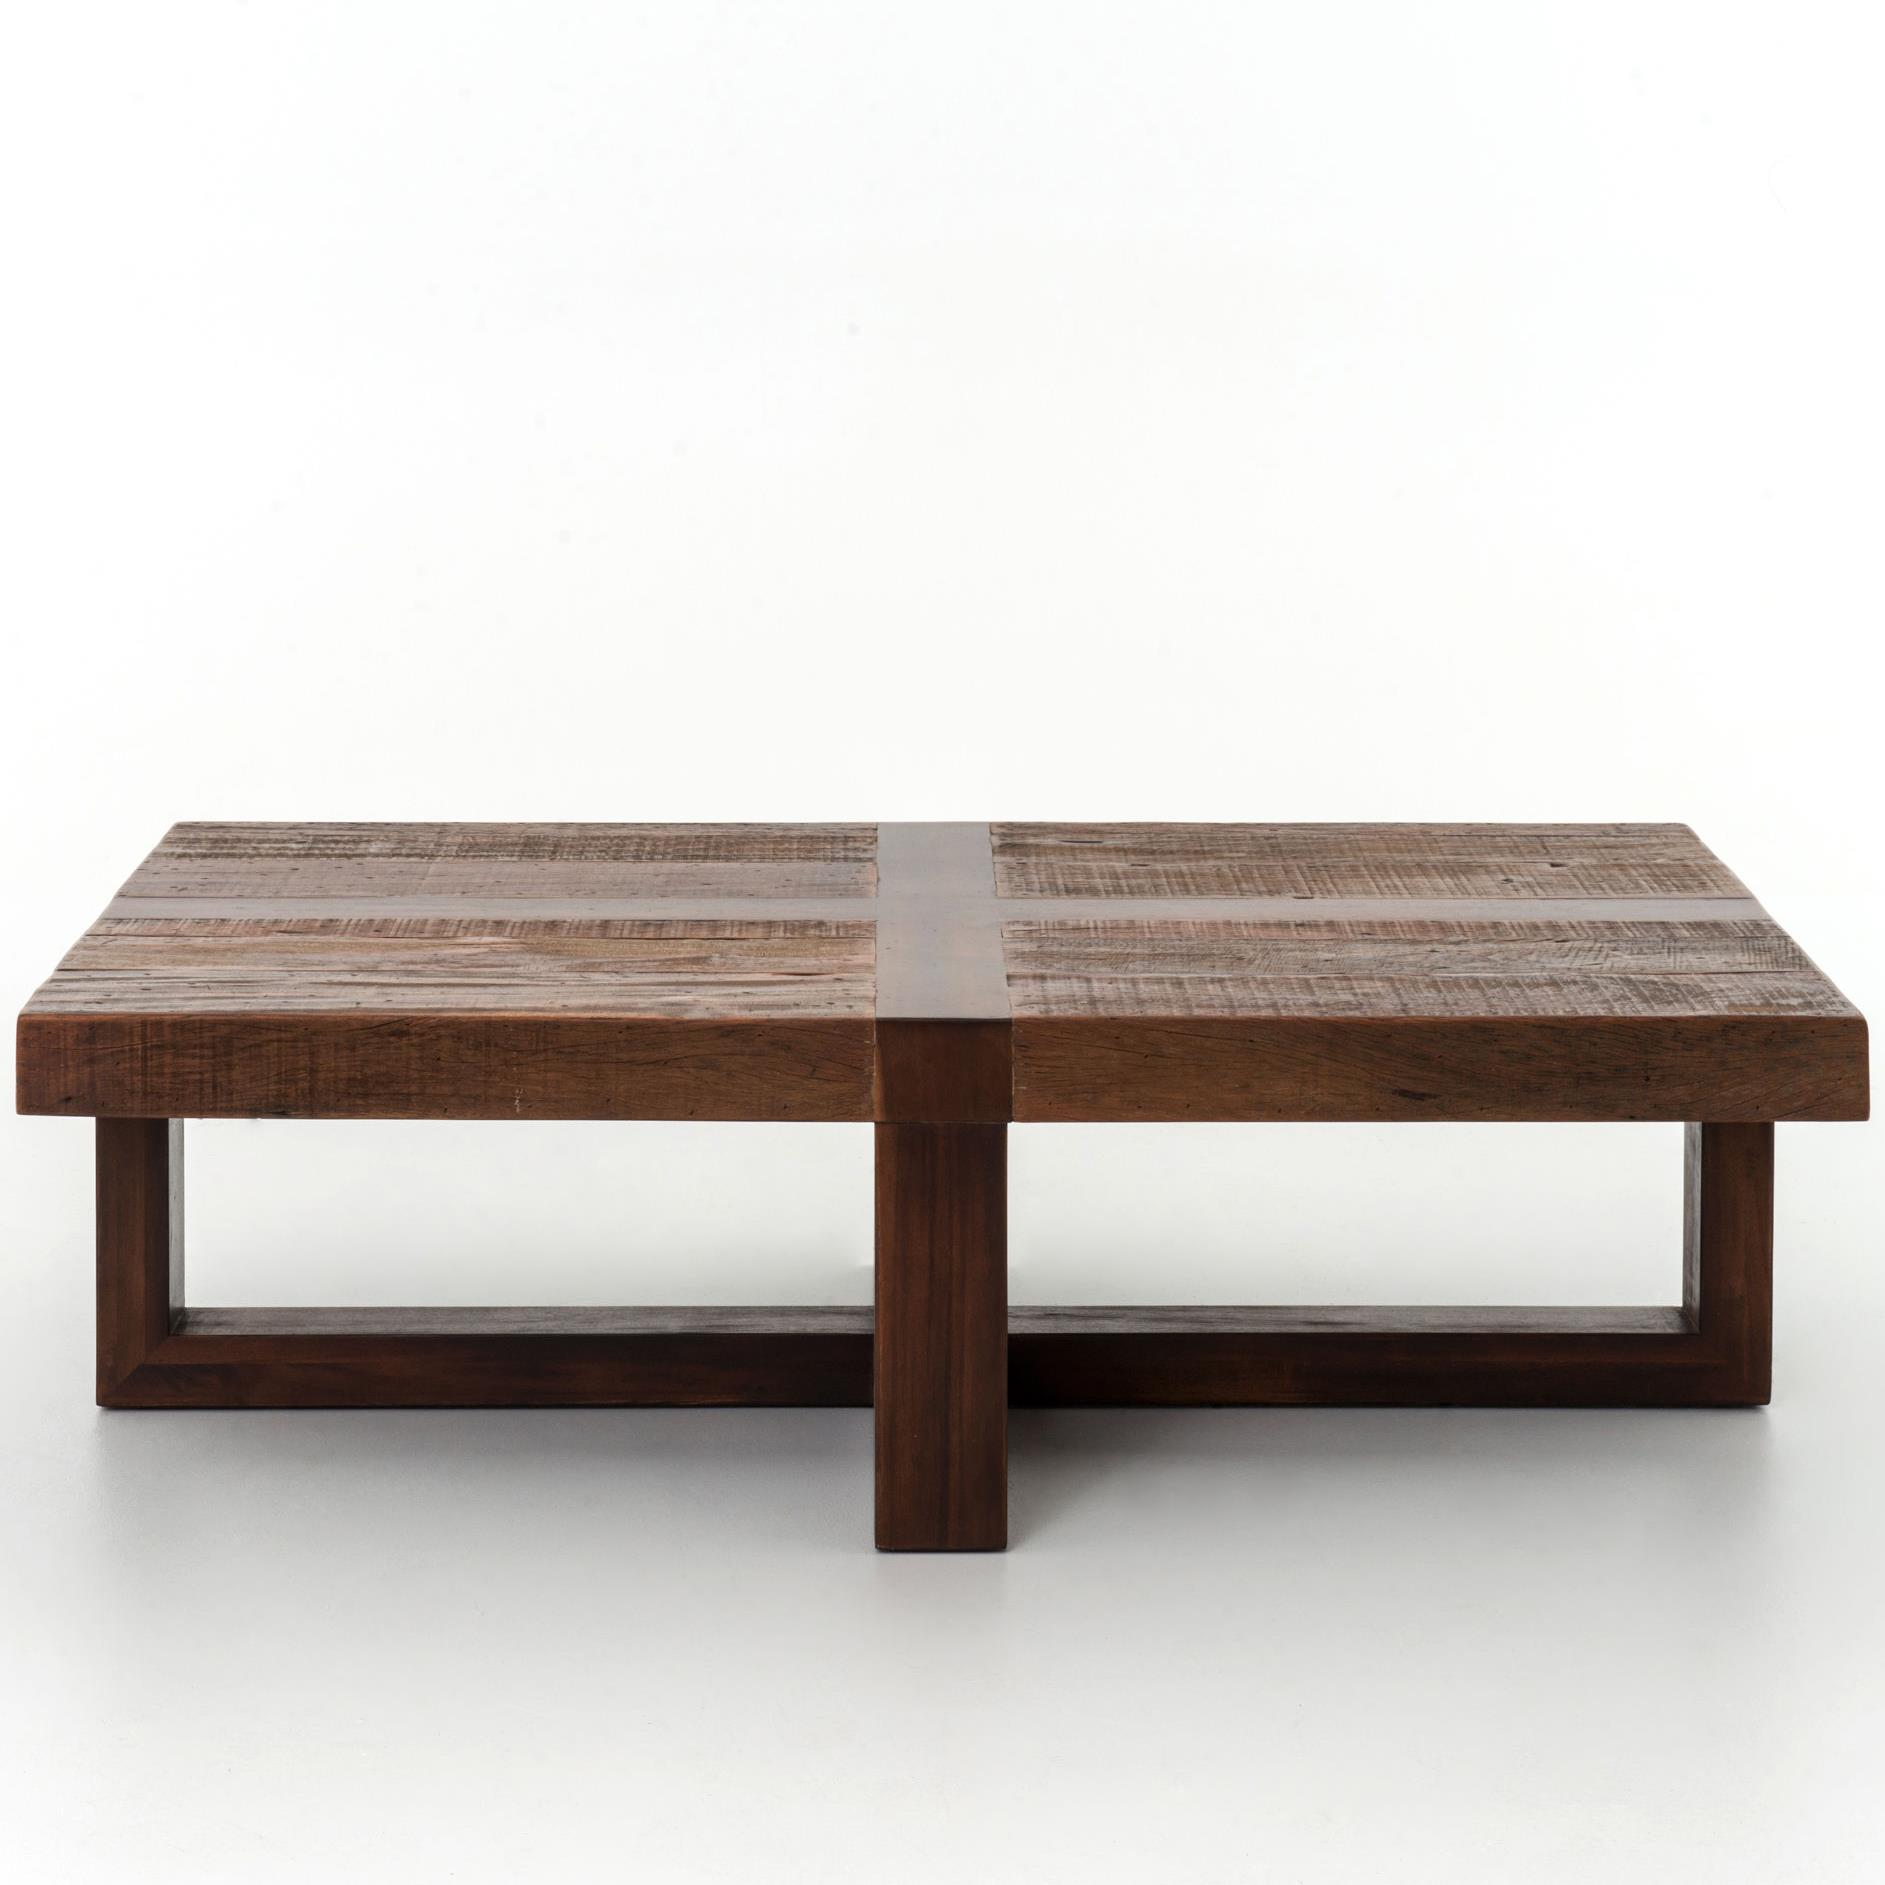 Four Hands Bina Bryan Coffee Table - Item Number: VBNA-CT466